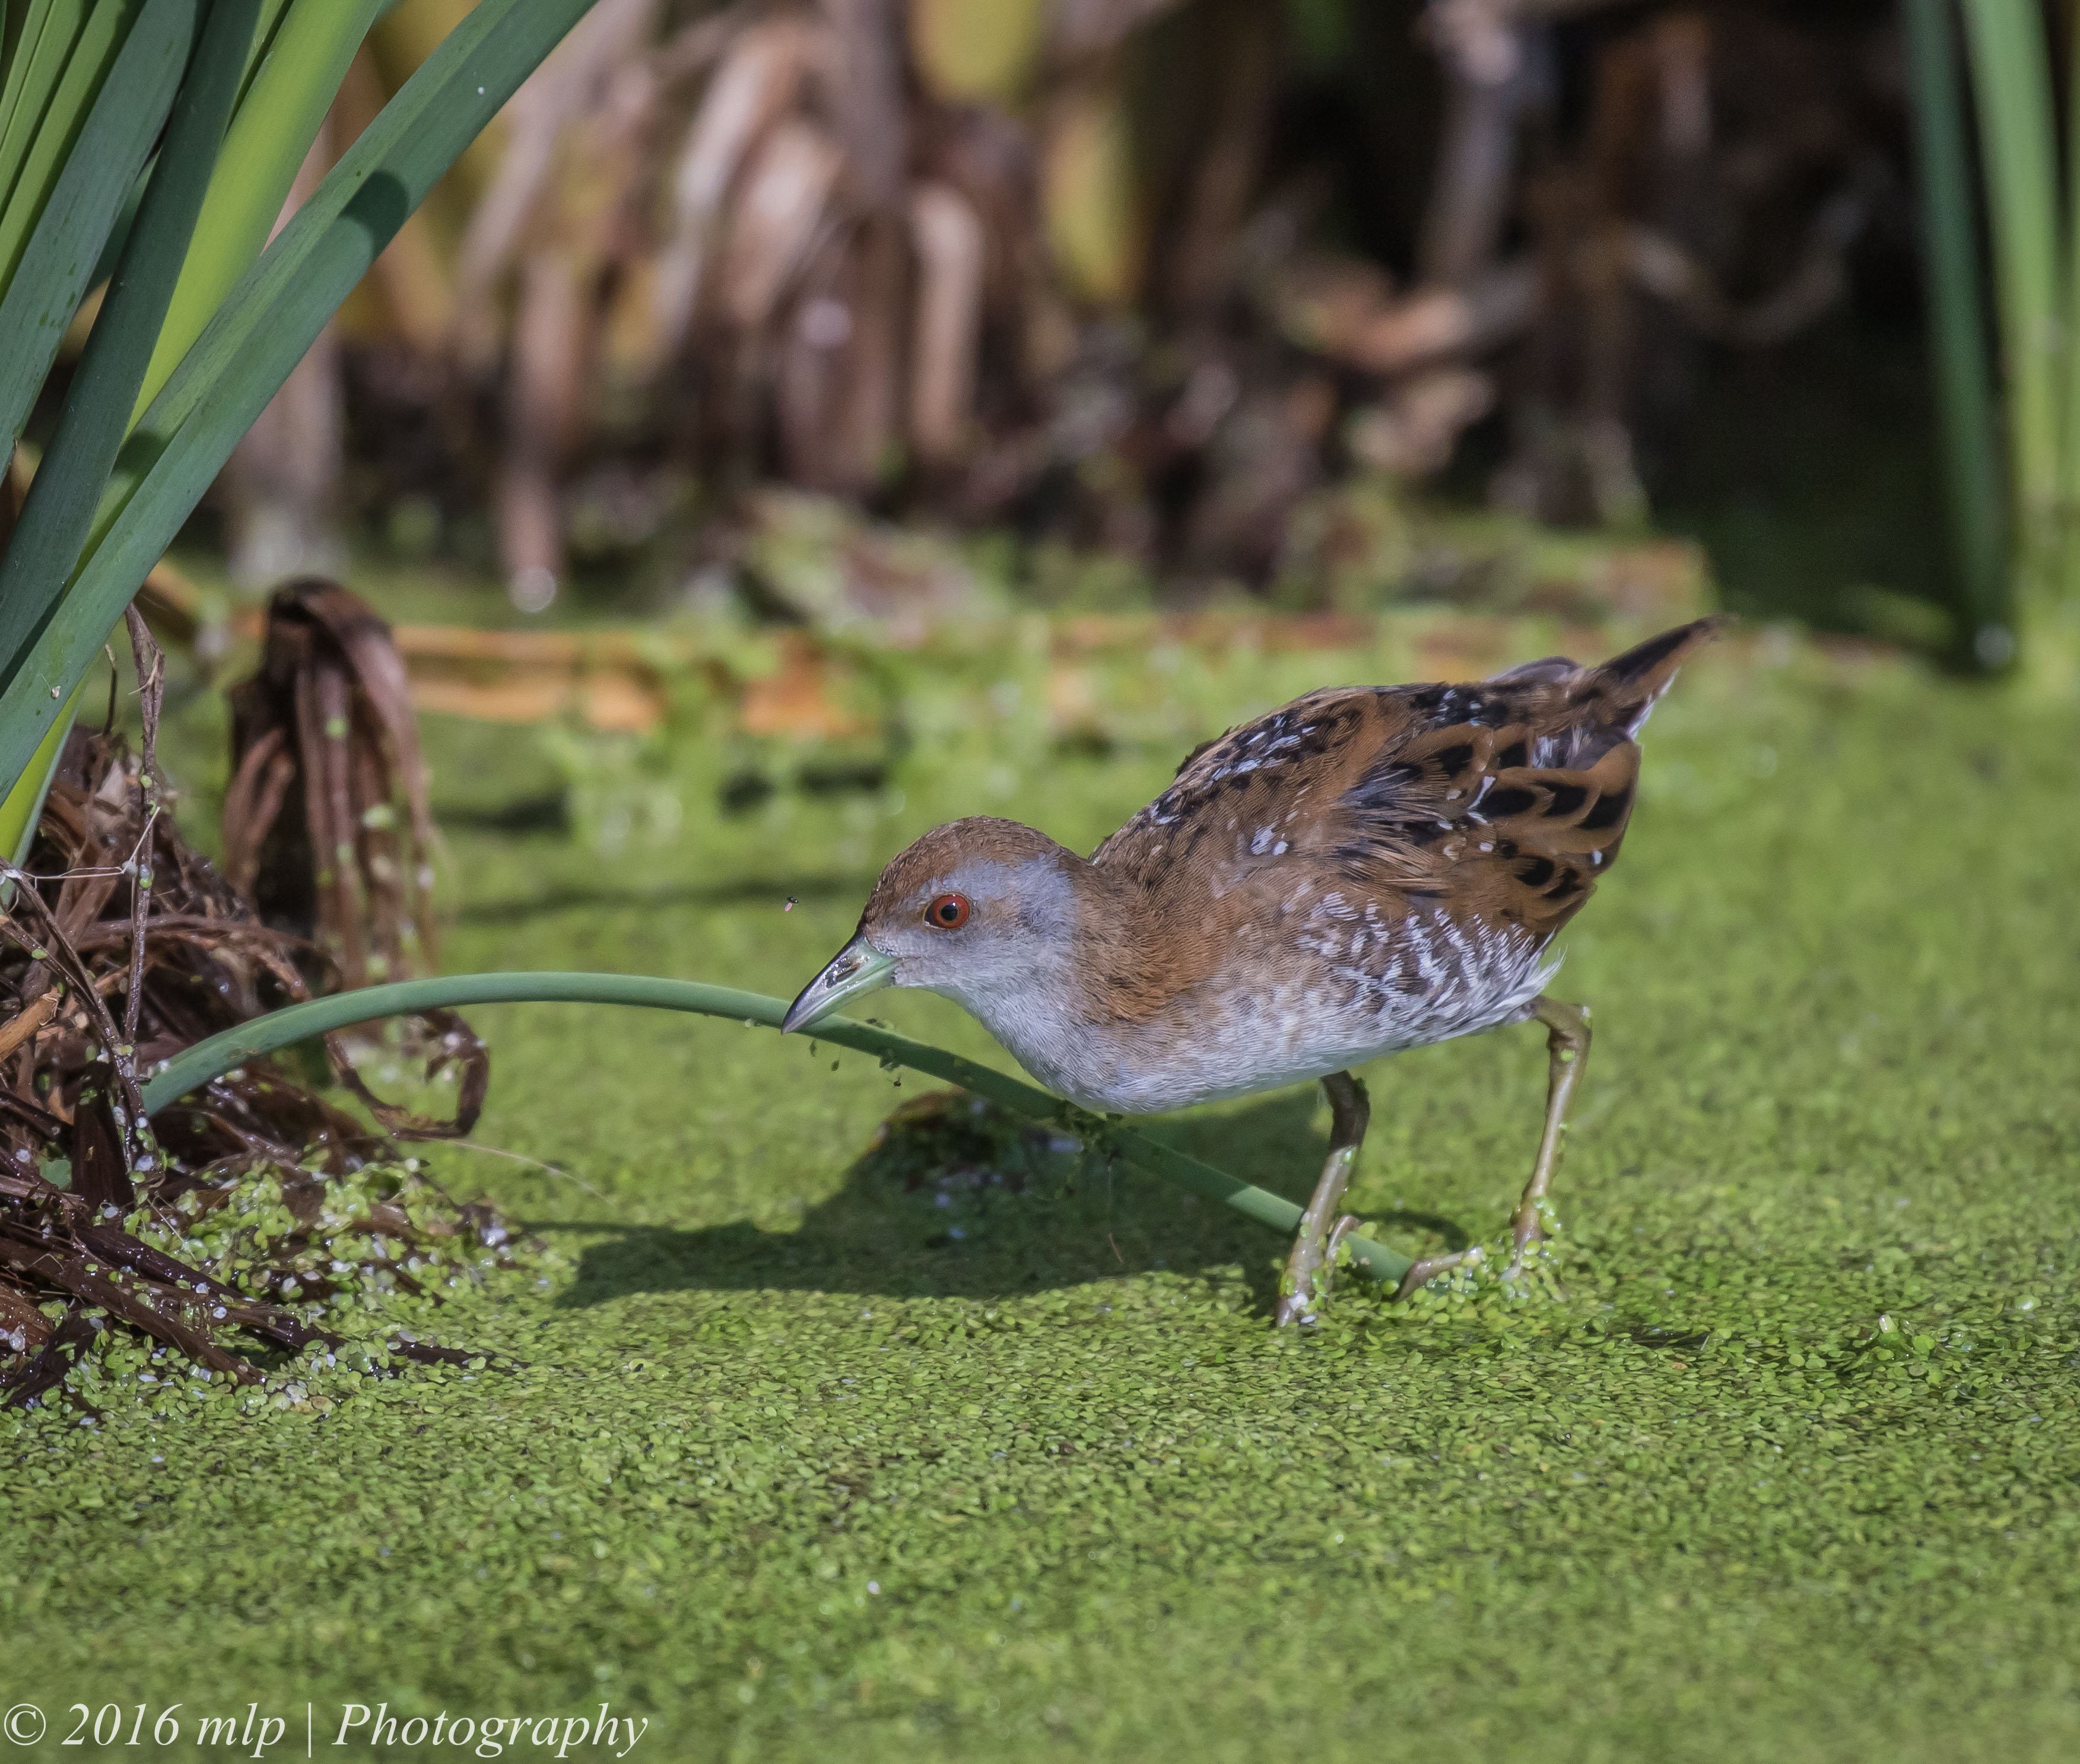 Baillon's Crake's migration mystery | The Gap Year and Beyond